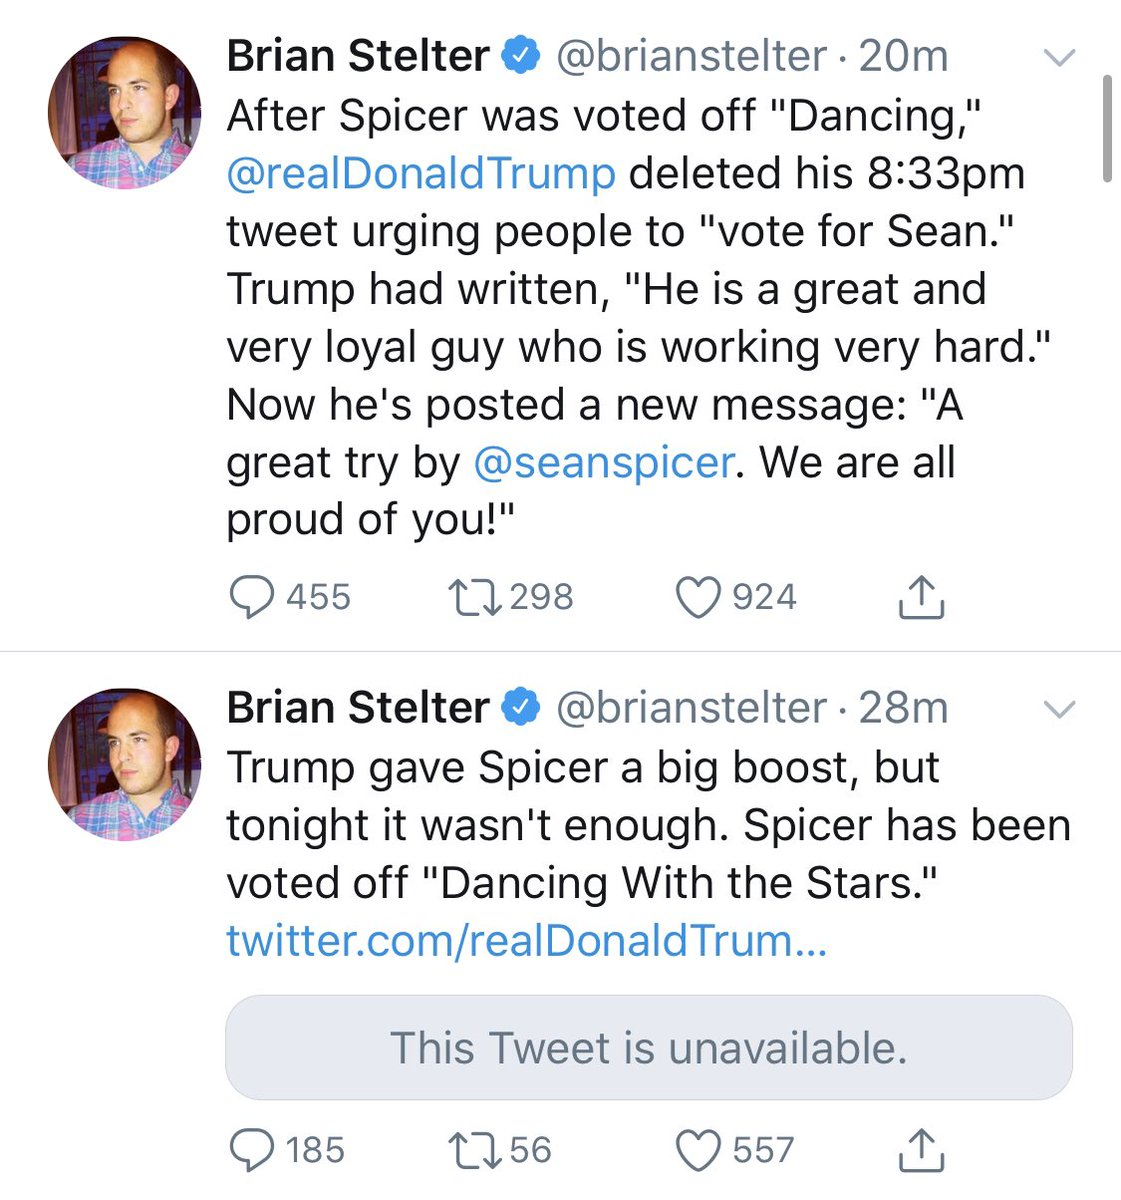 .@brianstelter has officially tweeted more about a dance show than two mainstream networks colluding to fire a female employee for exposing a network anchor revealing her story about a high profile pedophile  was spiked.